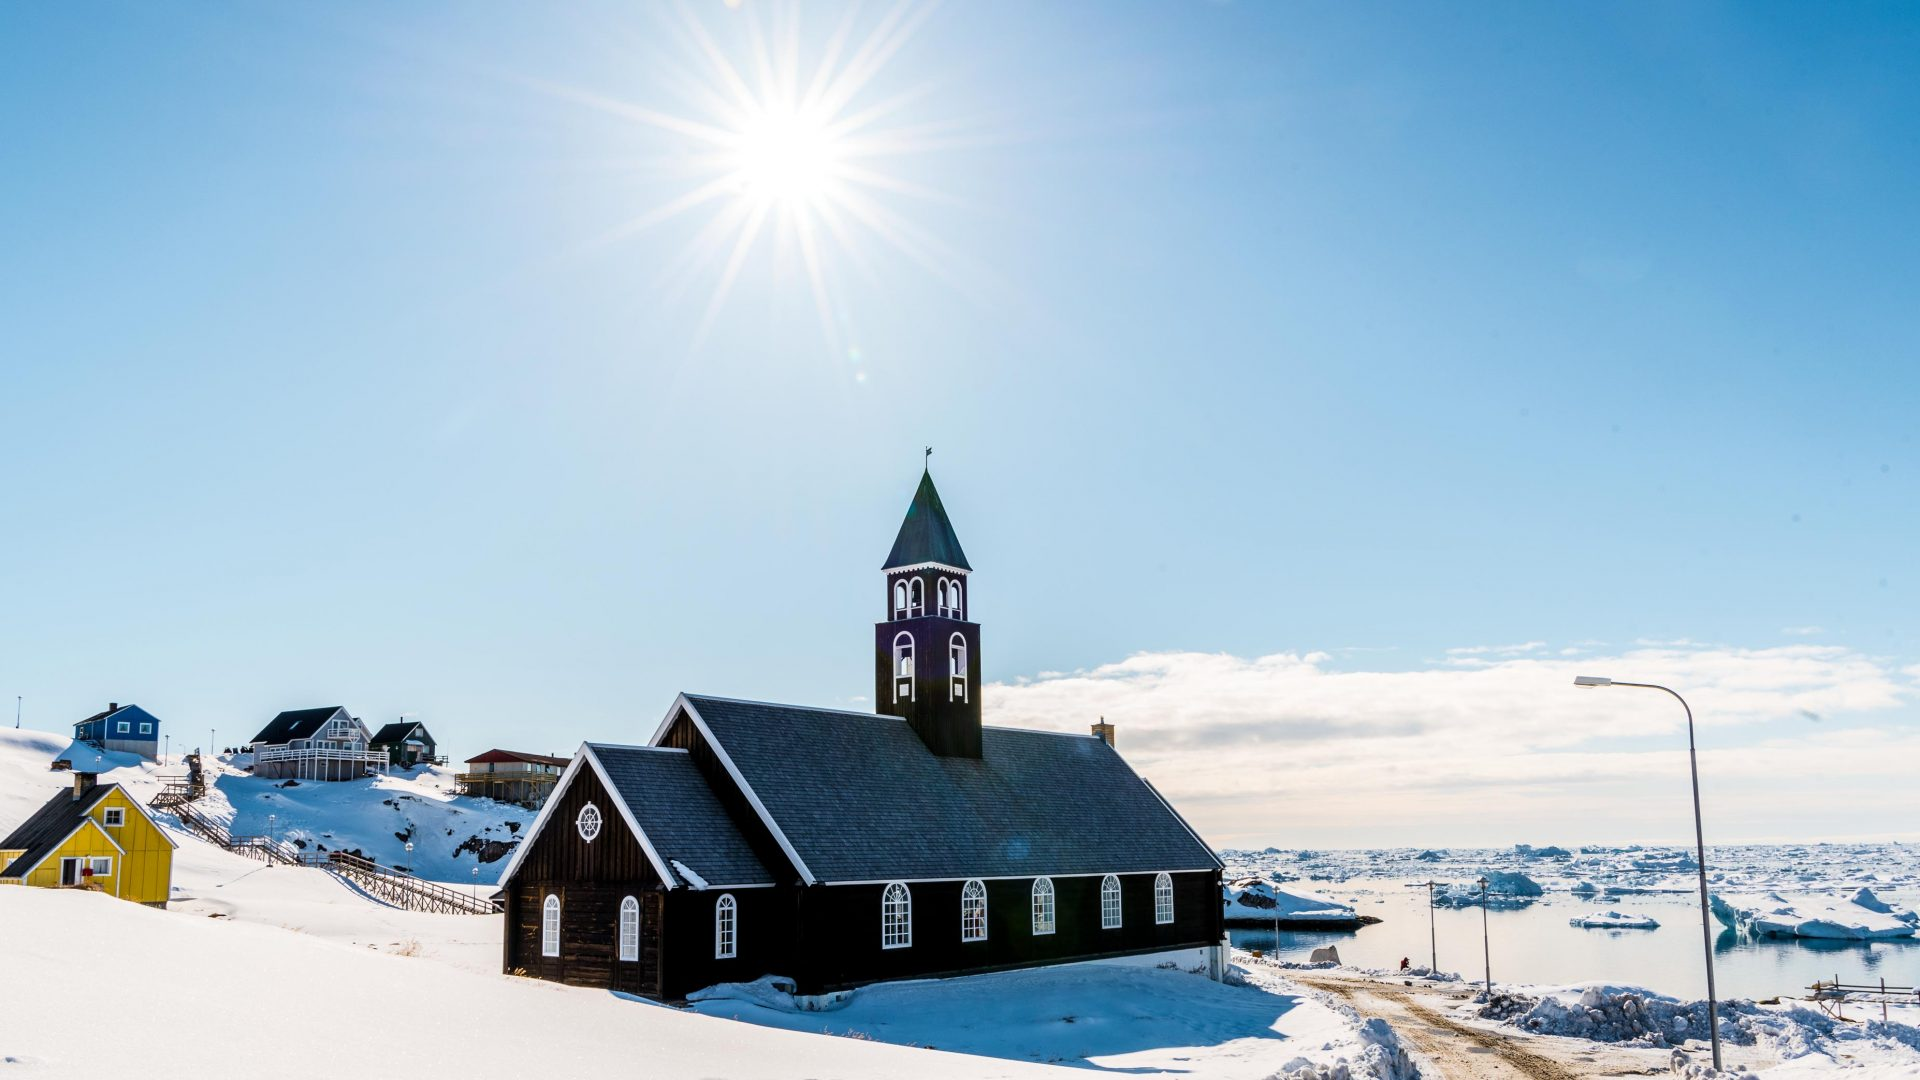 Built in the 18th century, the brown wooden Church of Zion (Zions Kirke) remains one of the most iconic (and most photographed) churches in Greenland. It was said to be the largest man-made structure in Greenland at the time of its inception.